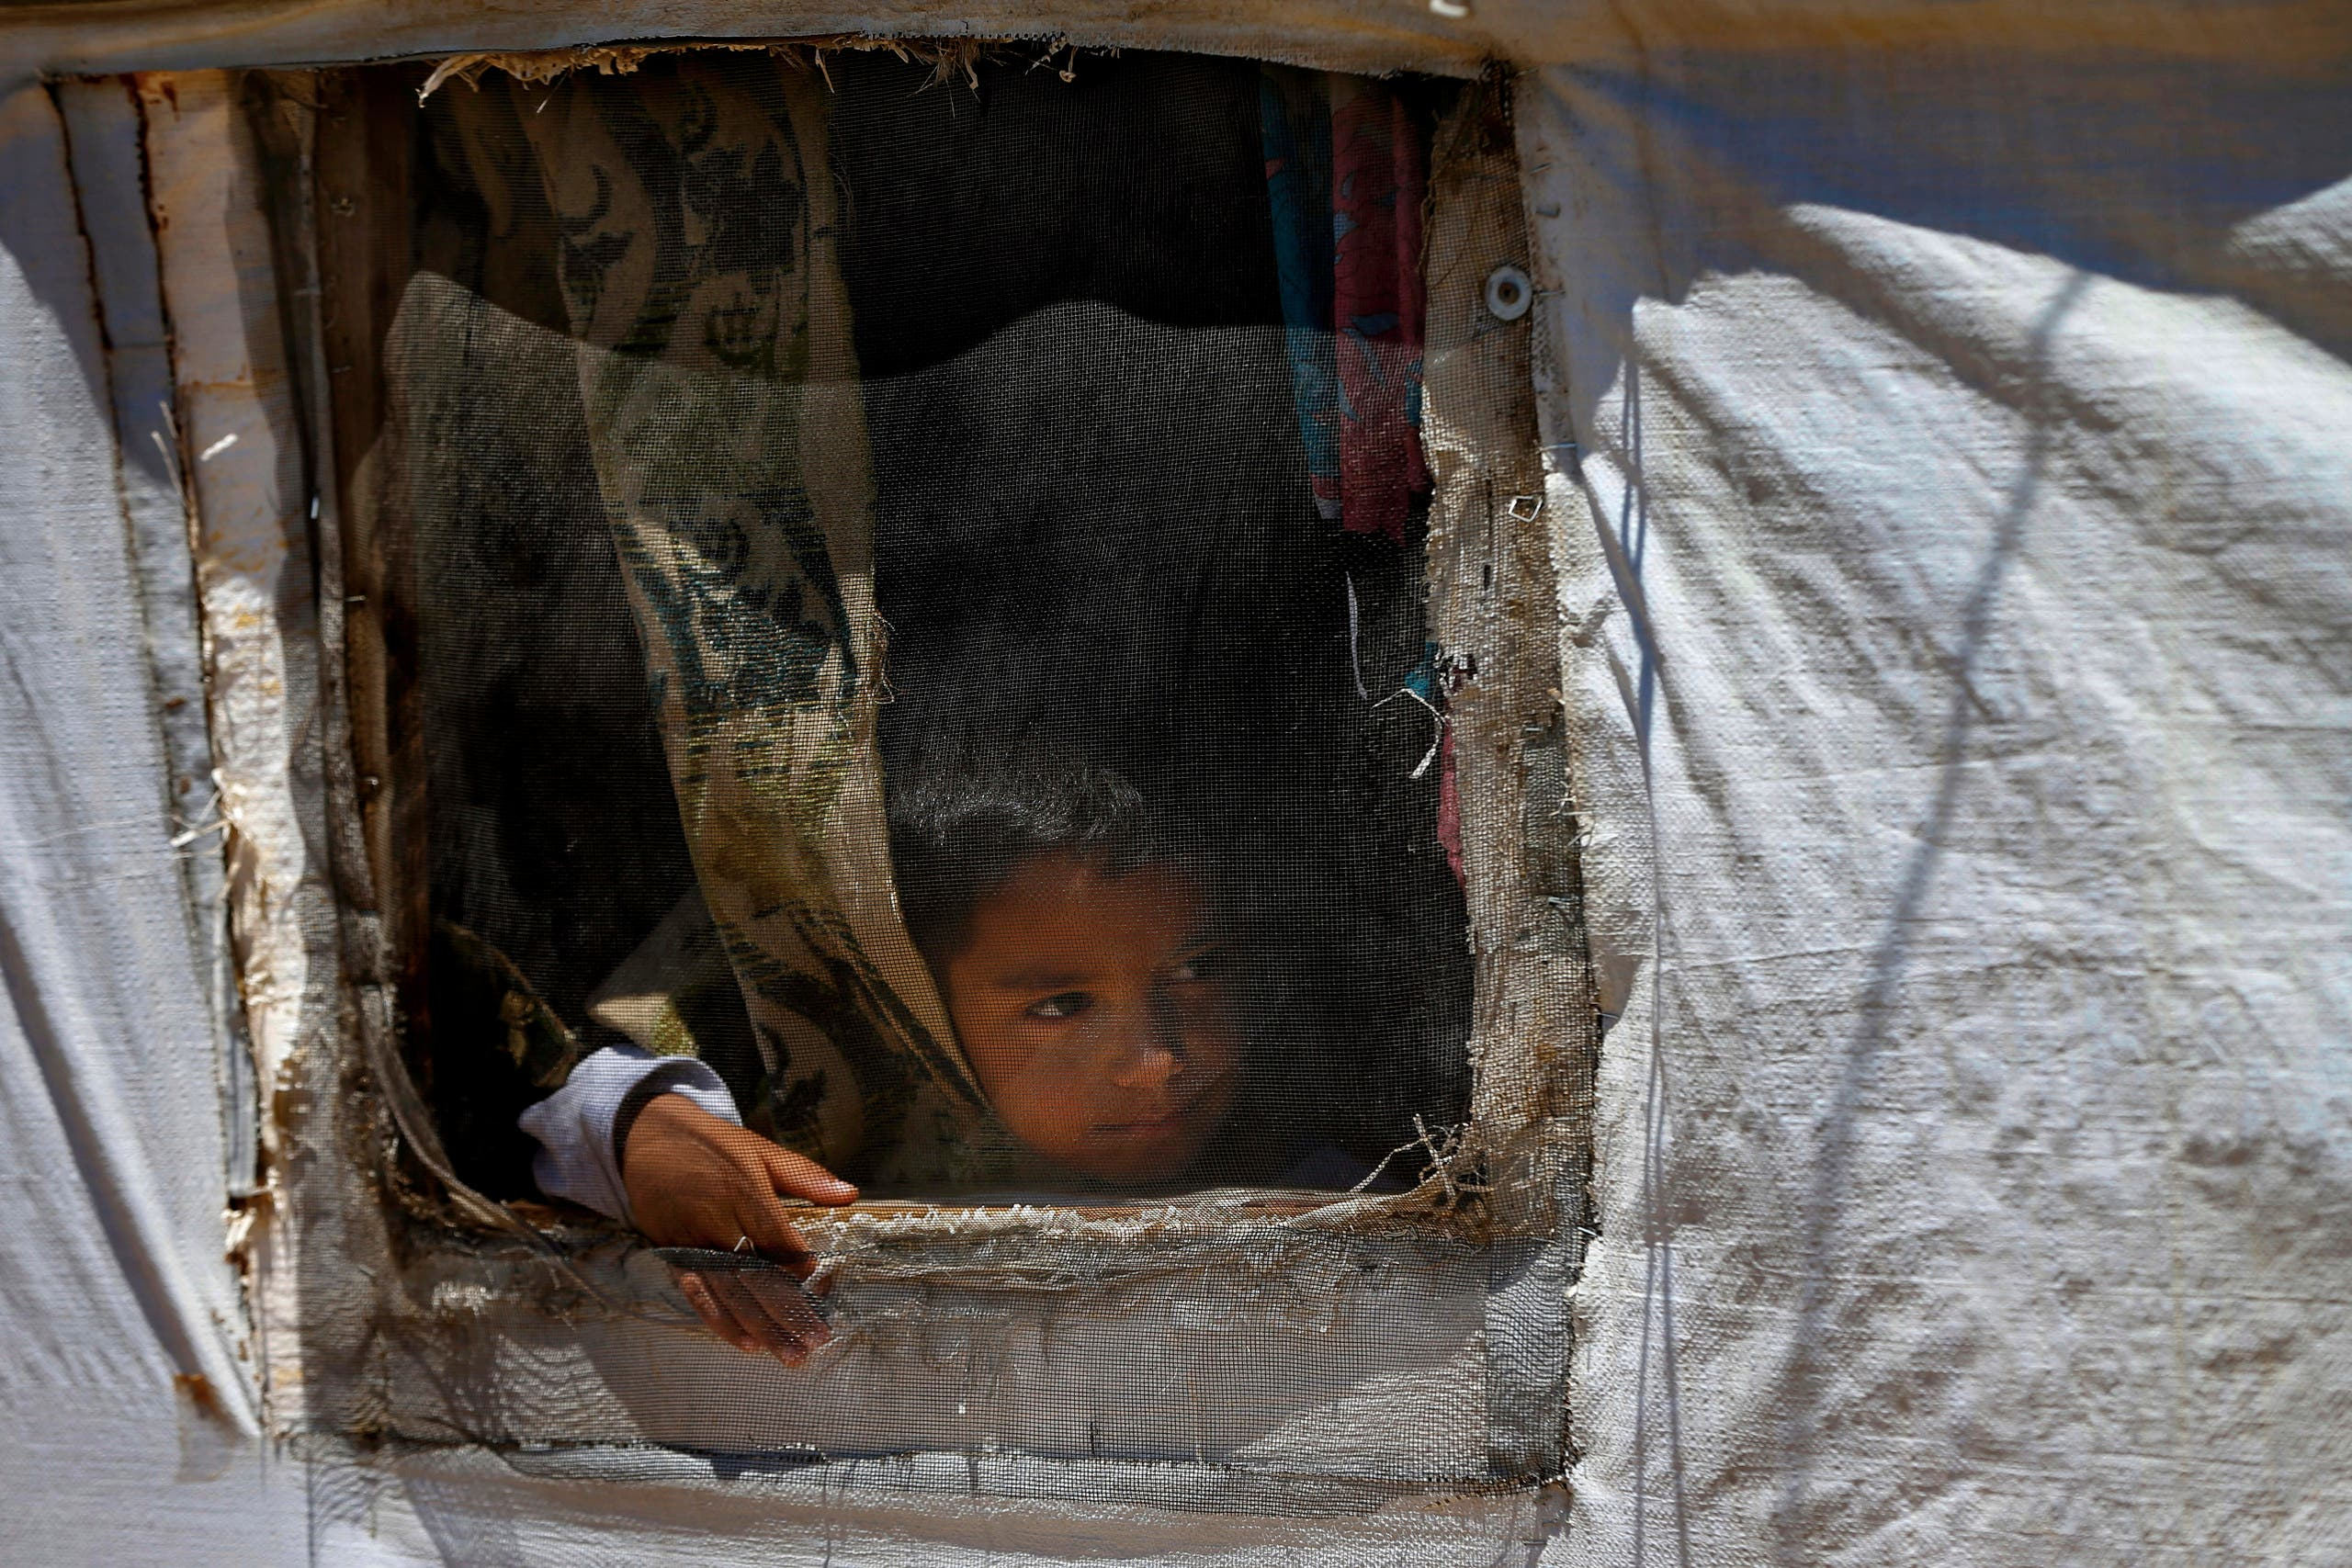 A Syrian refugee child looks through a window in his family tent in a refugee camp in the border town of Arsal, Lebanon, on June 16, 2019. (AP)